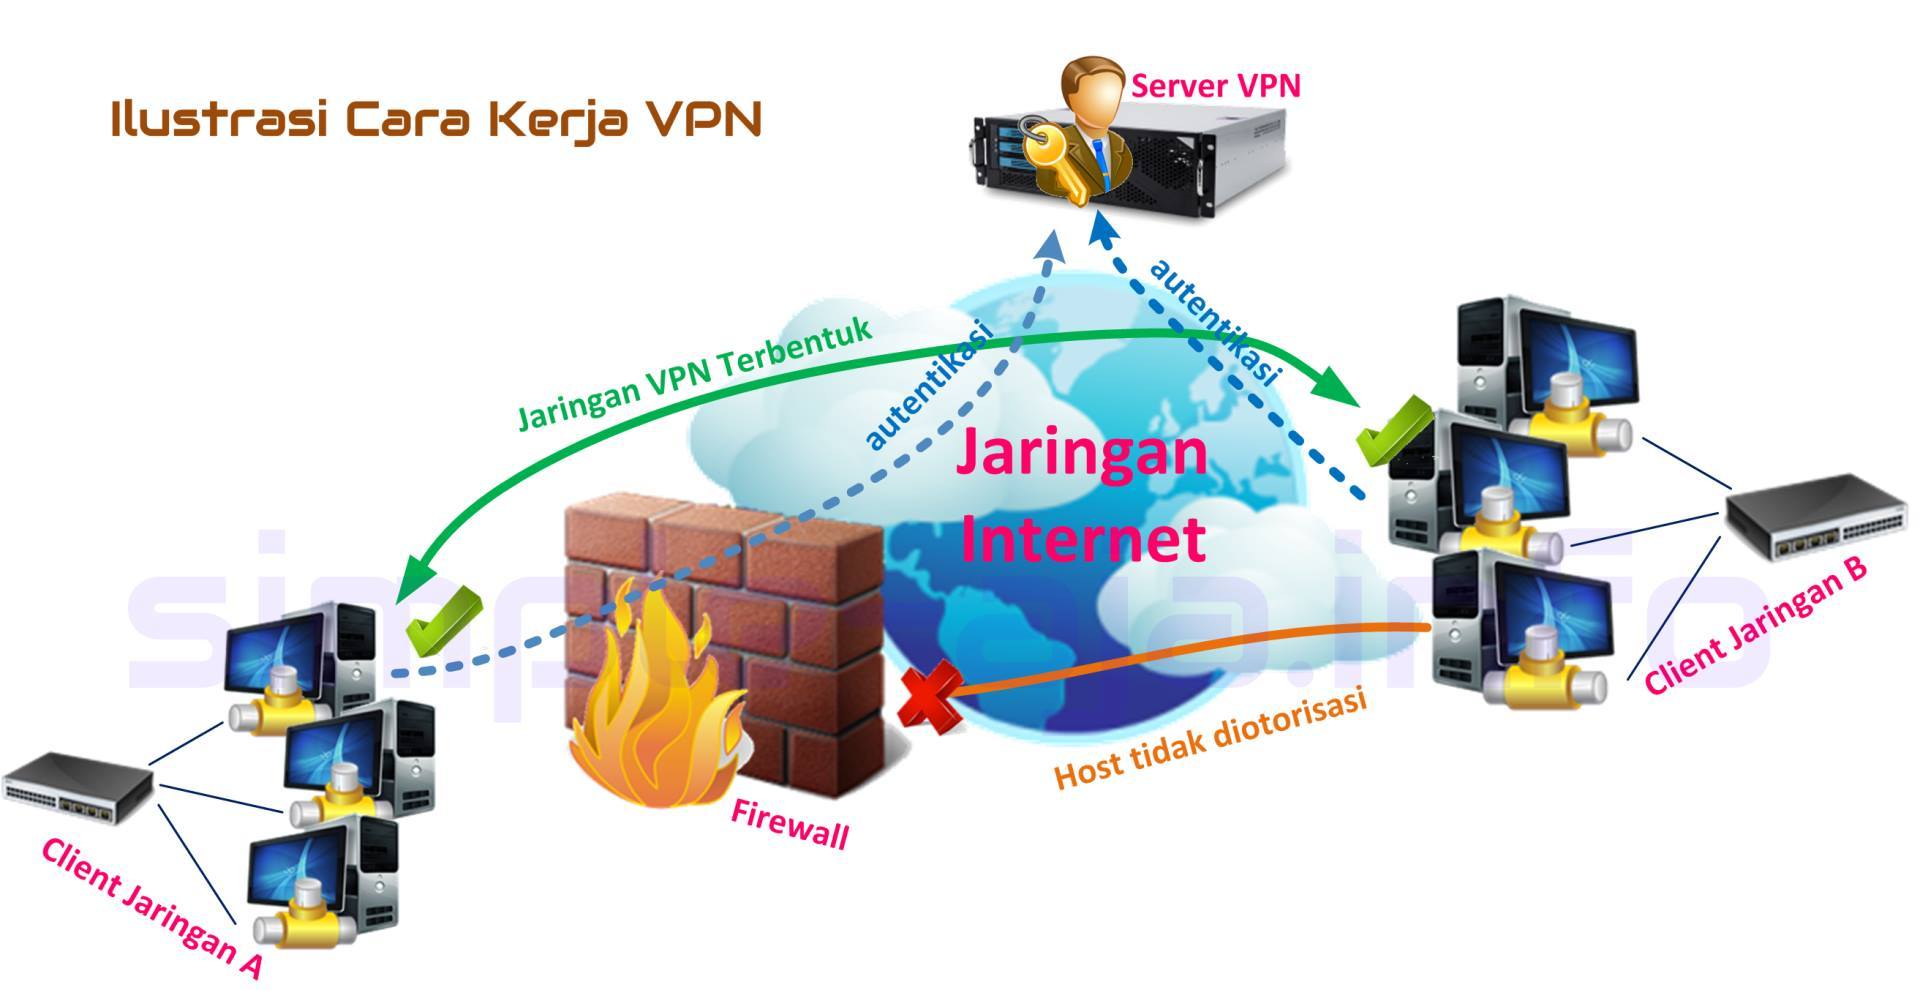 Seputar virtual private network fungsi dan cara kerja vpn diagram cara kerja vpn ccuart Image collections